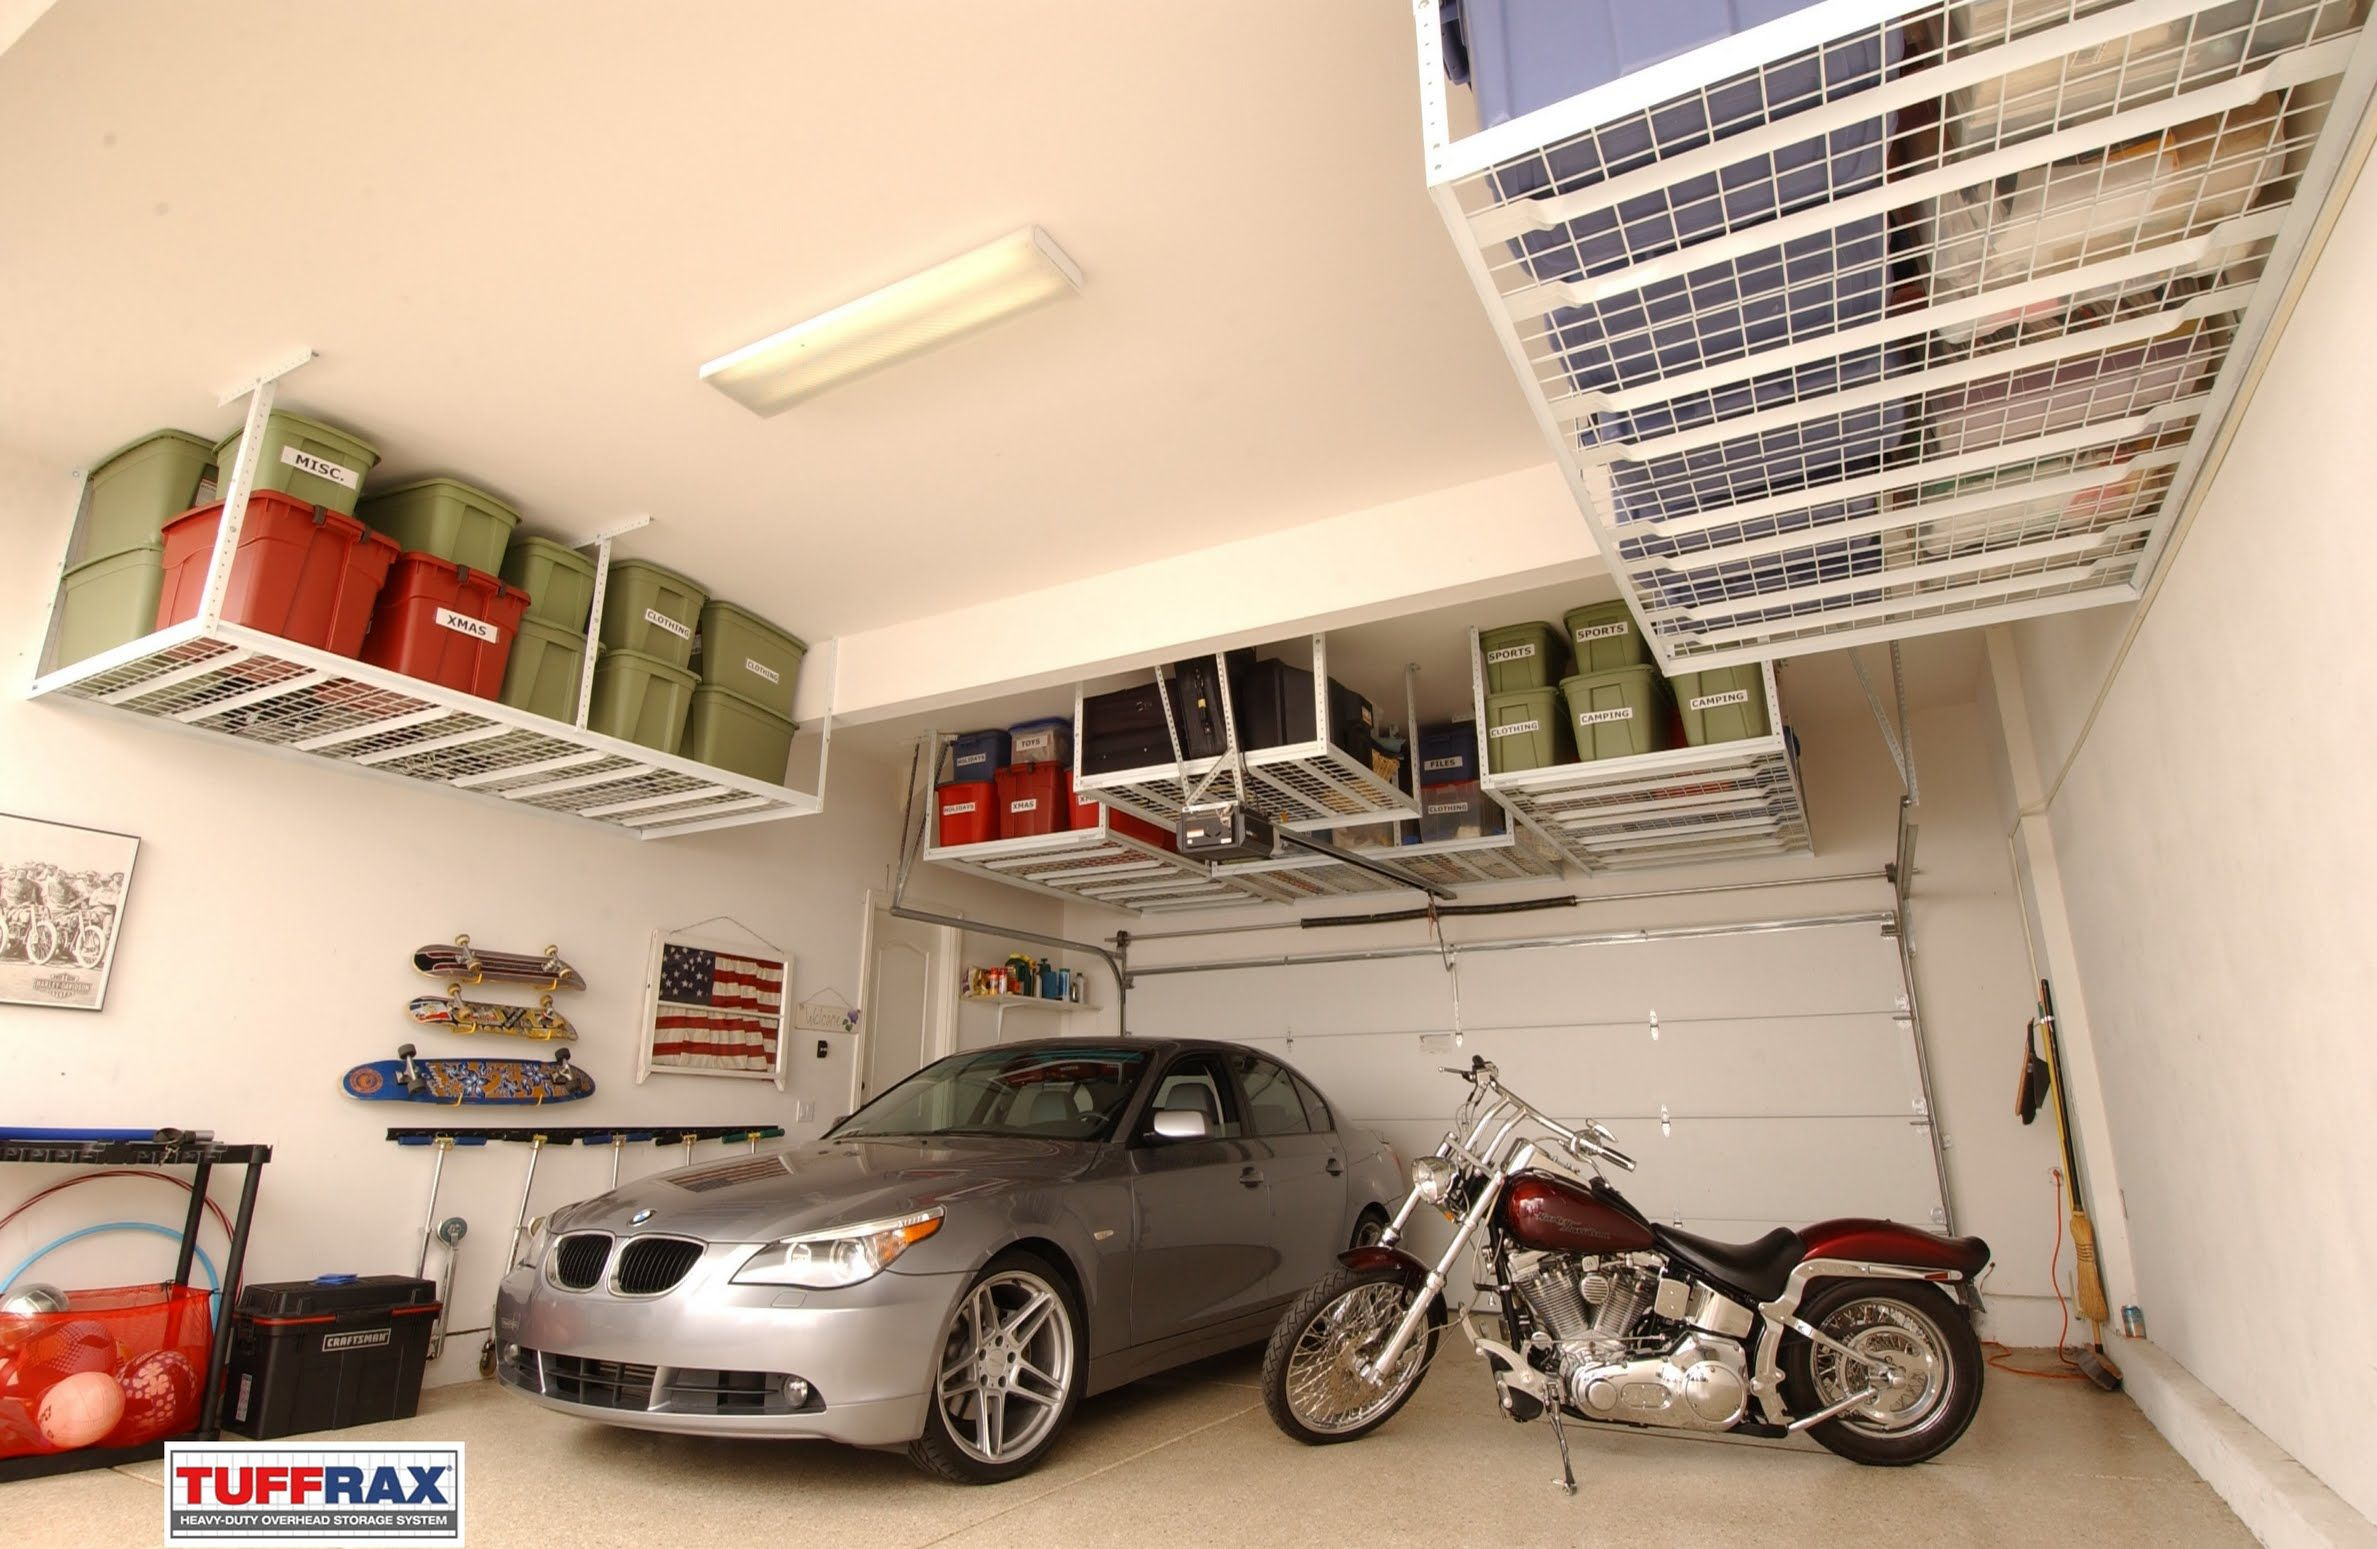 Now this is a cool way to organize your garage It leaves tons of